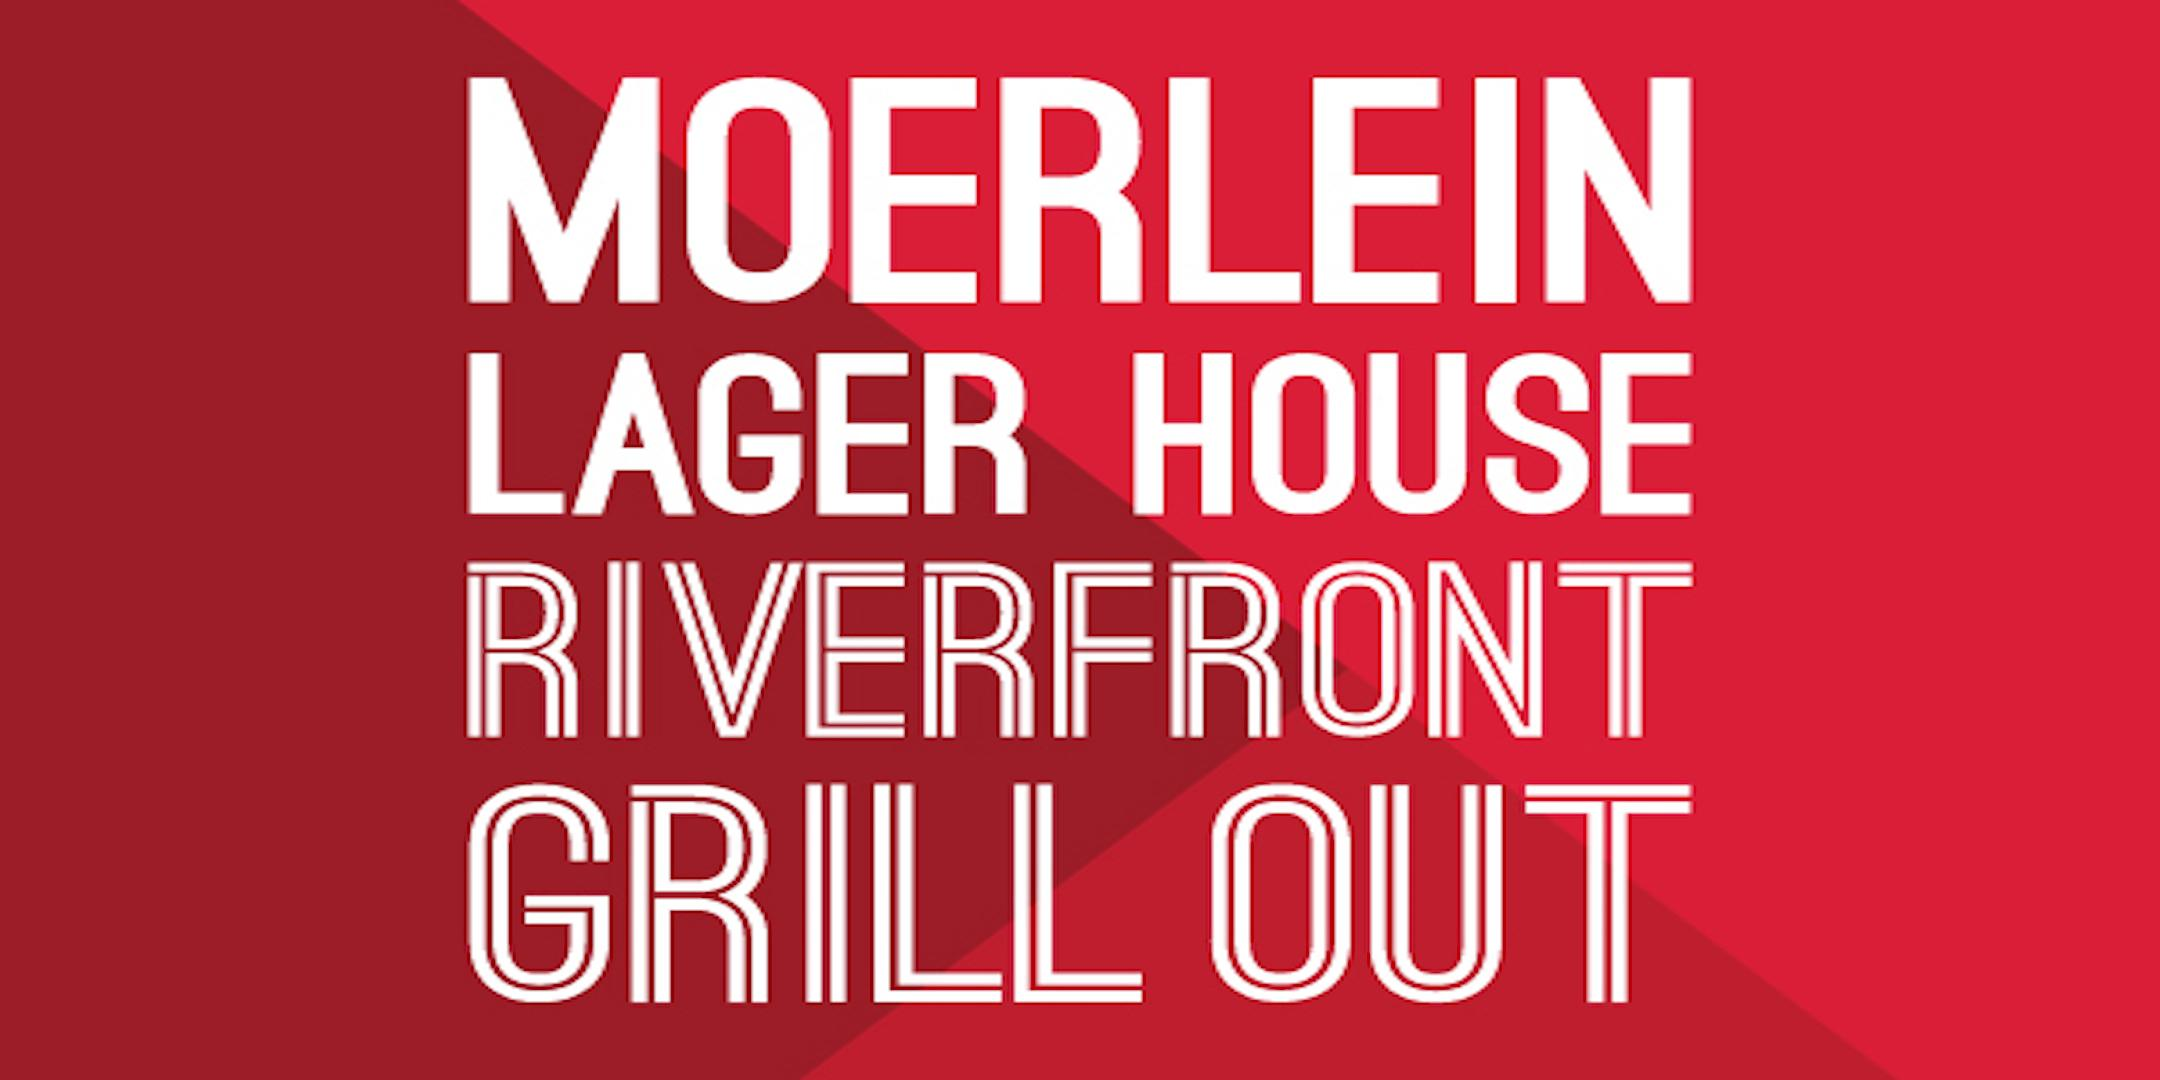 Riverfront Grill Out